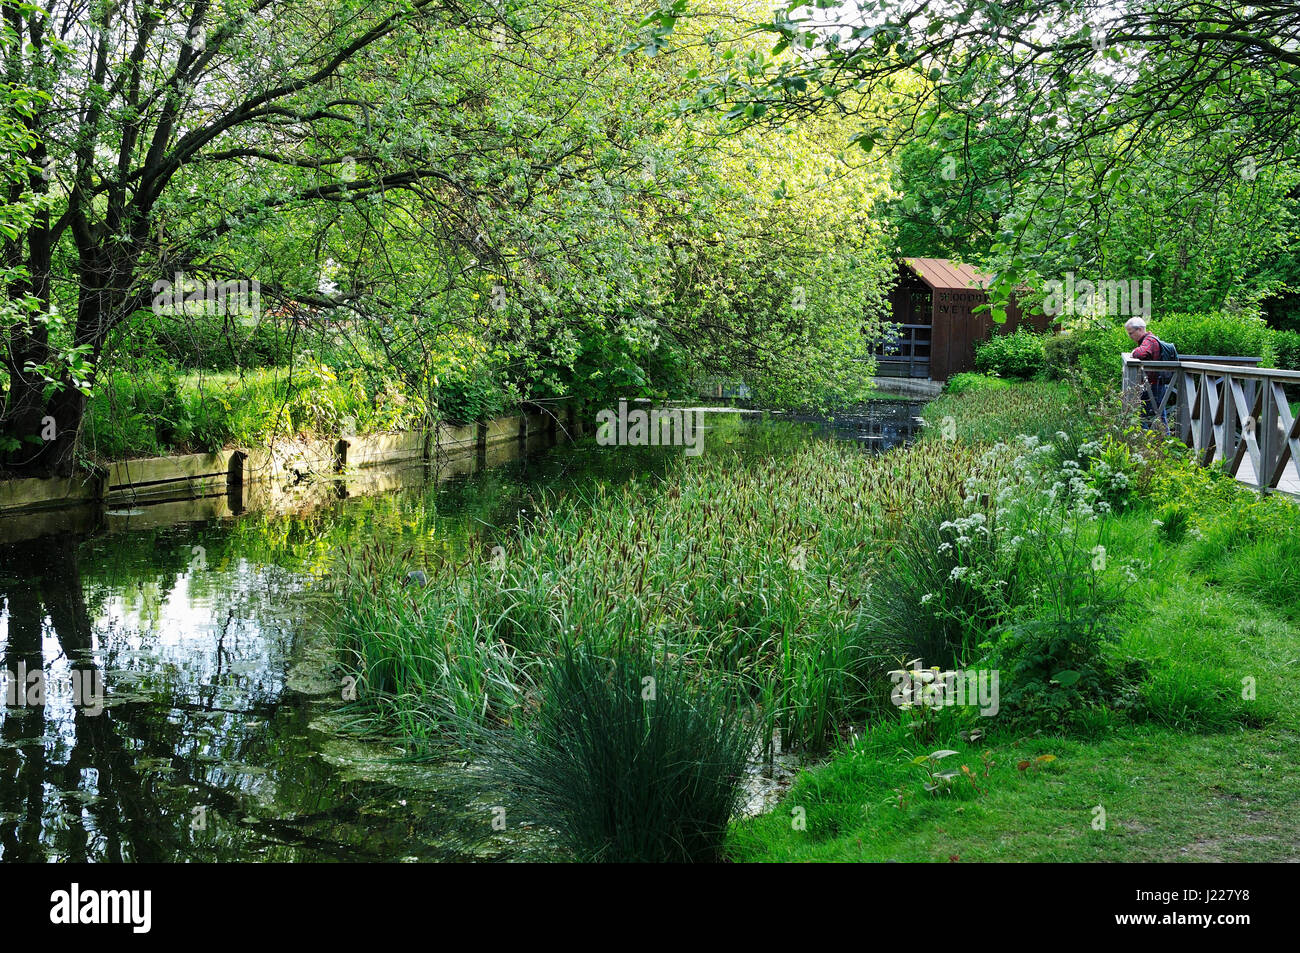 Woodberry Wetlands Nature Reserve, North London UK - Stock Image